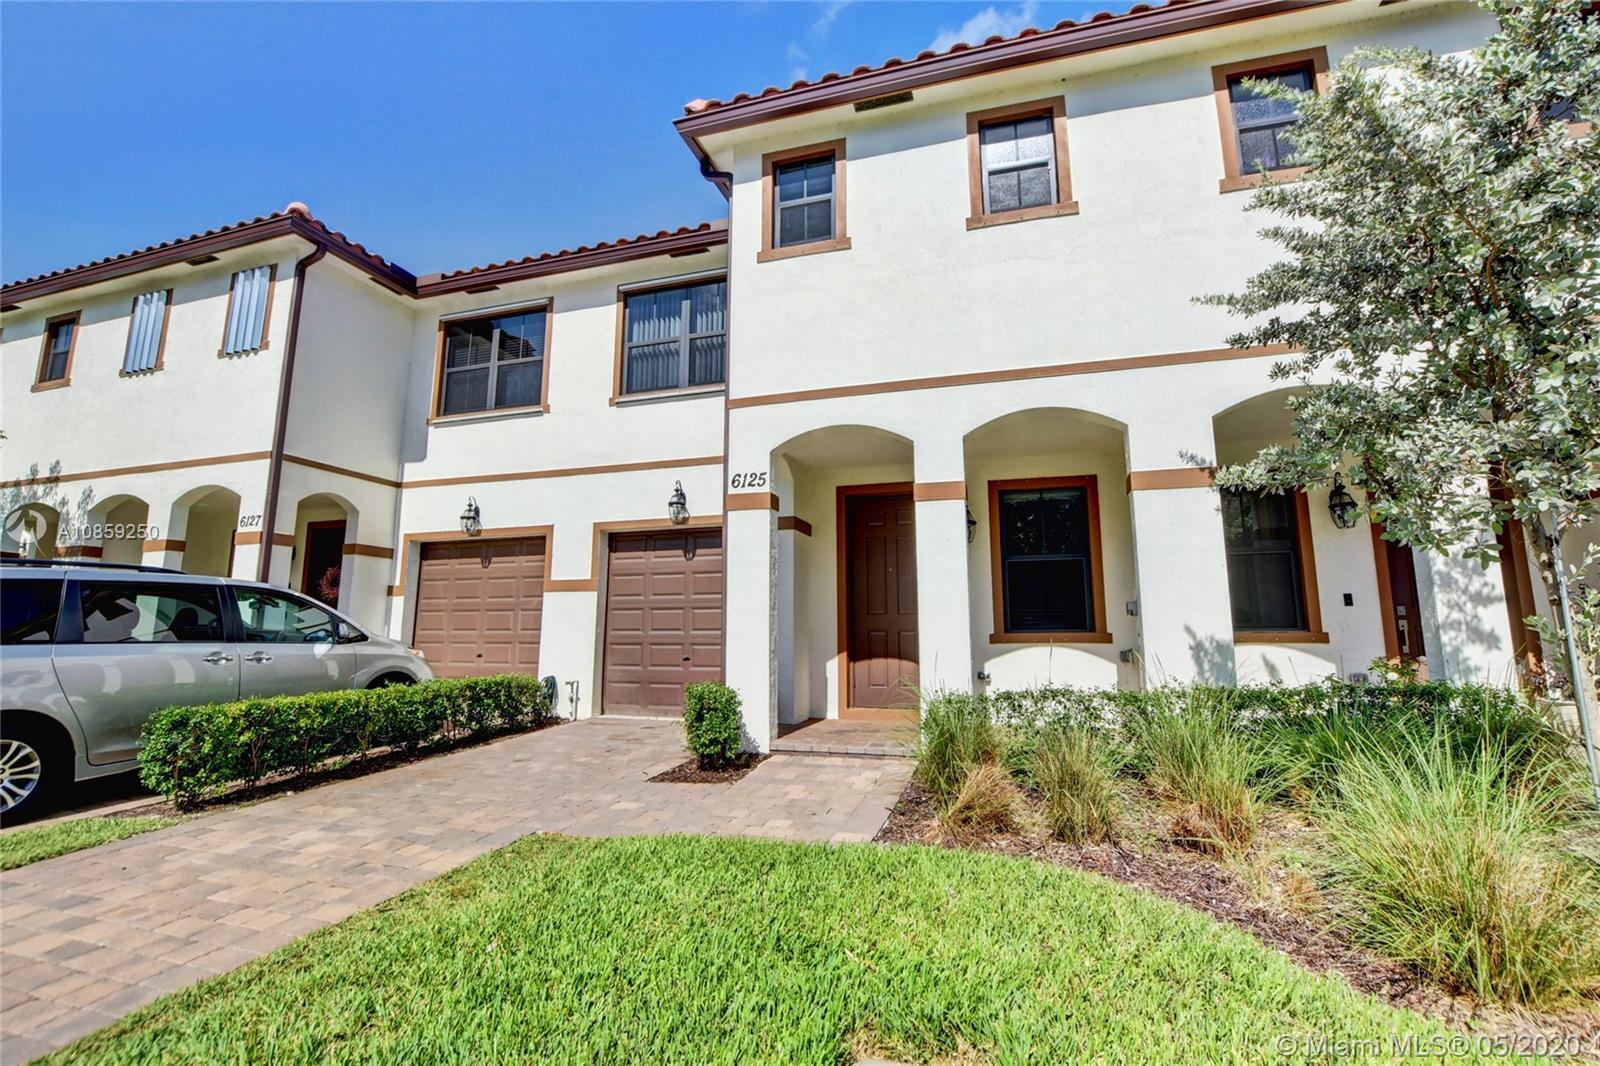 Check out this gorgeous 3 bedroom, 2.5 baths, luxurious, spacious townhouse, located on a premium lo